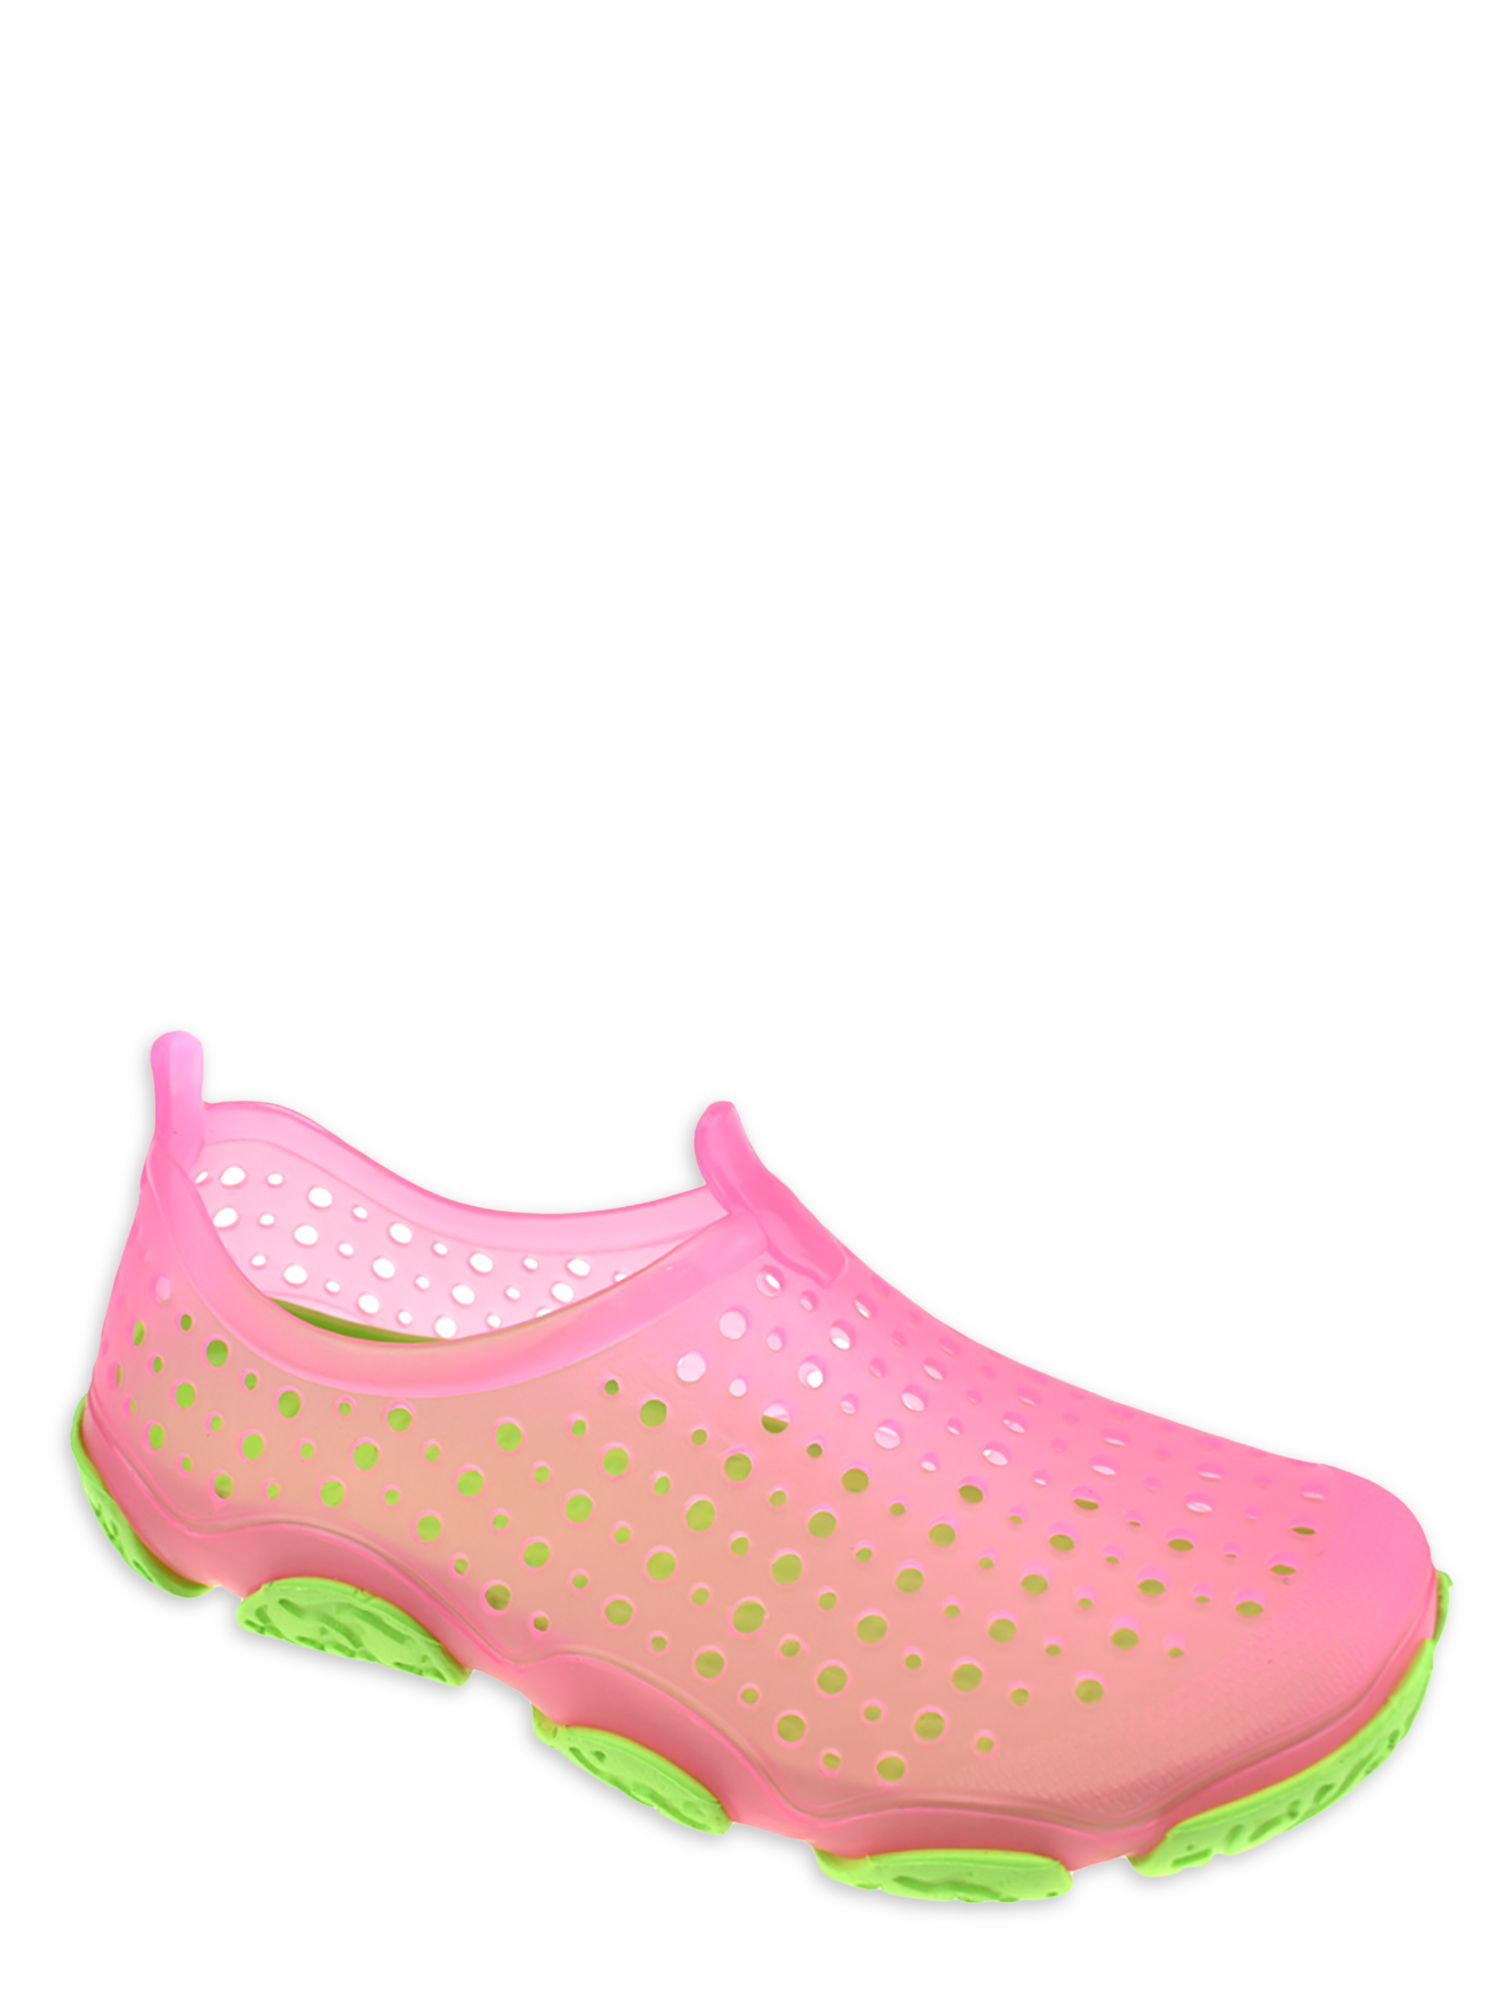 WP Colorful Jelly Clogs for Kids Girls Slip on Walking Waterproof Sandals 1003